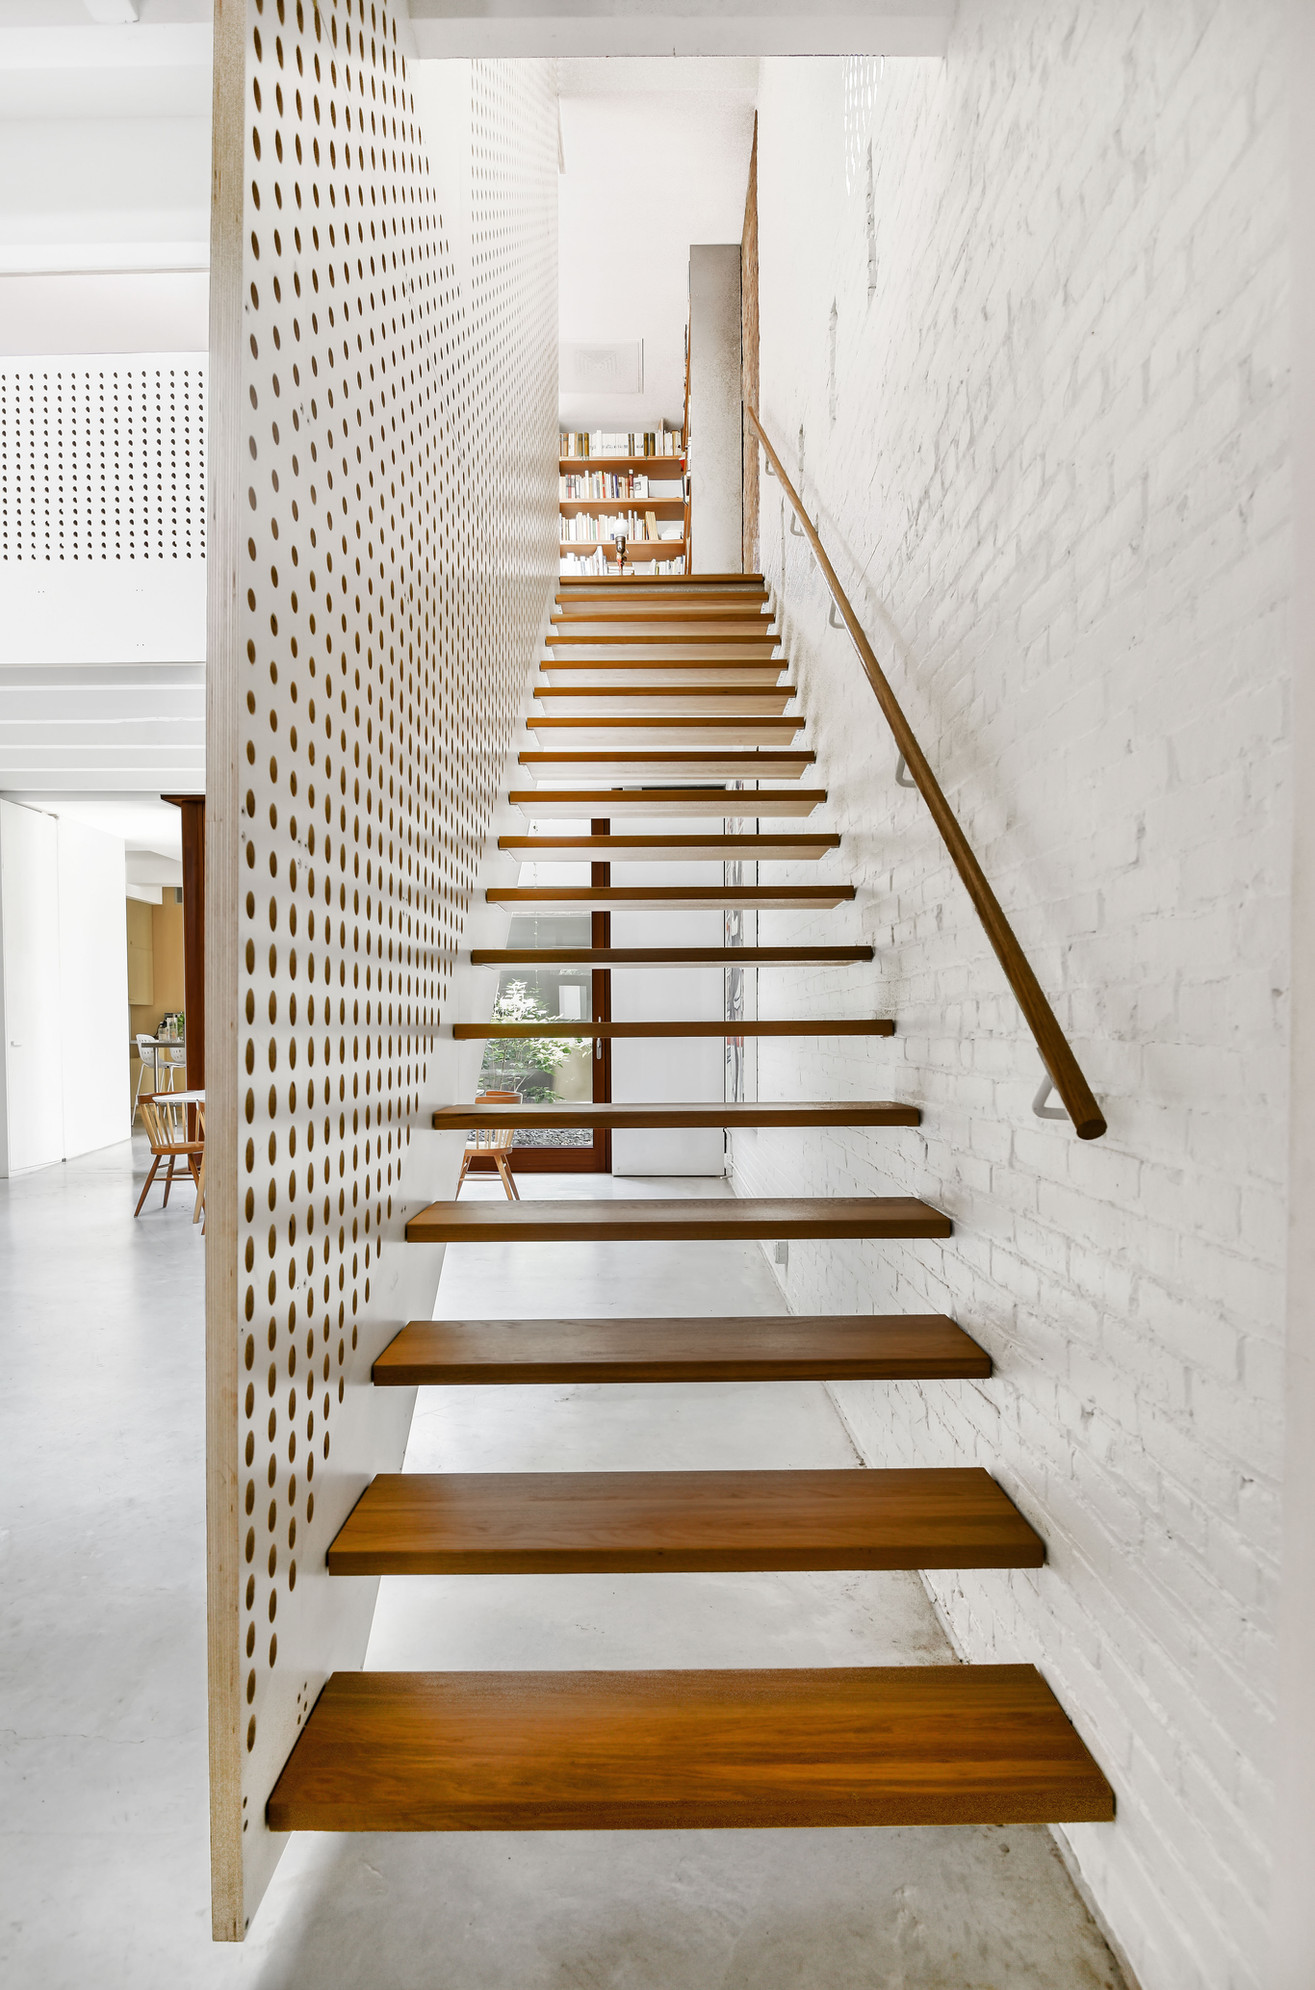 The stair wall is made of perforated plywood. Angle of holes radiates with 15 deg change.